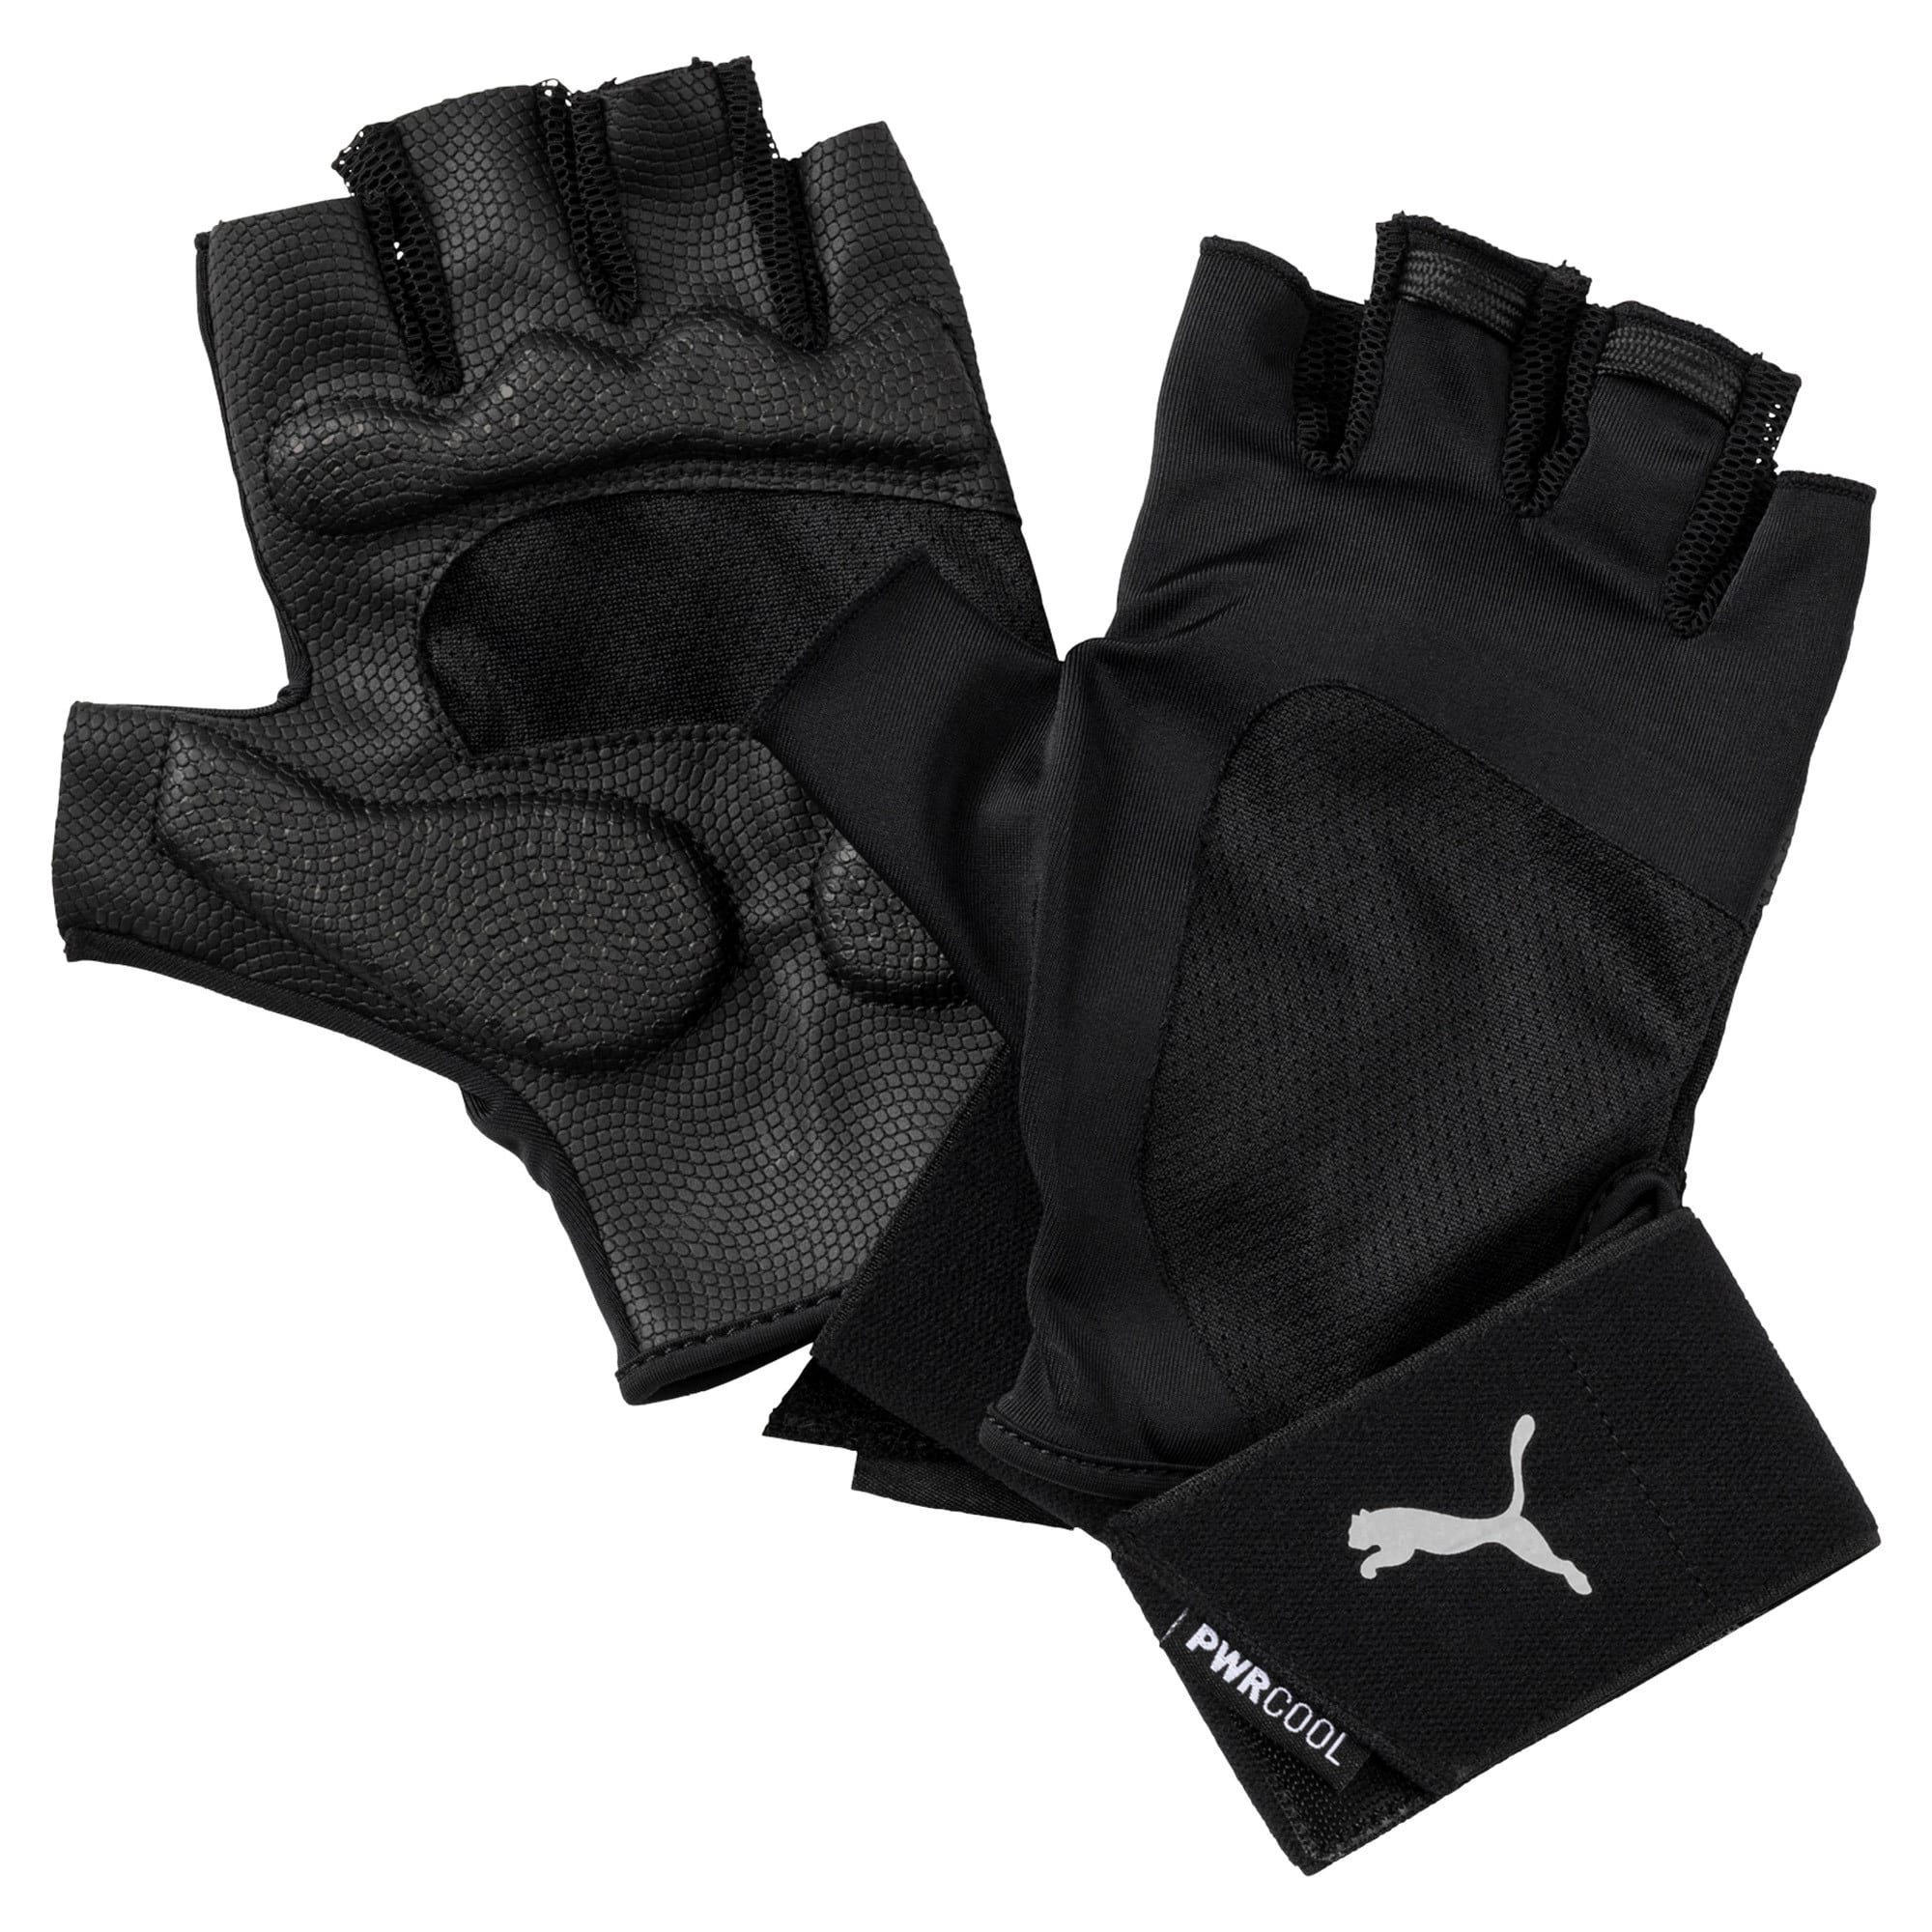 Thumbnail 1 of Training Men's Essential Premium Gloves, Puma Black-Gray Violet, medium-IND